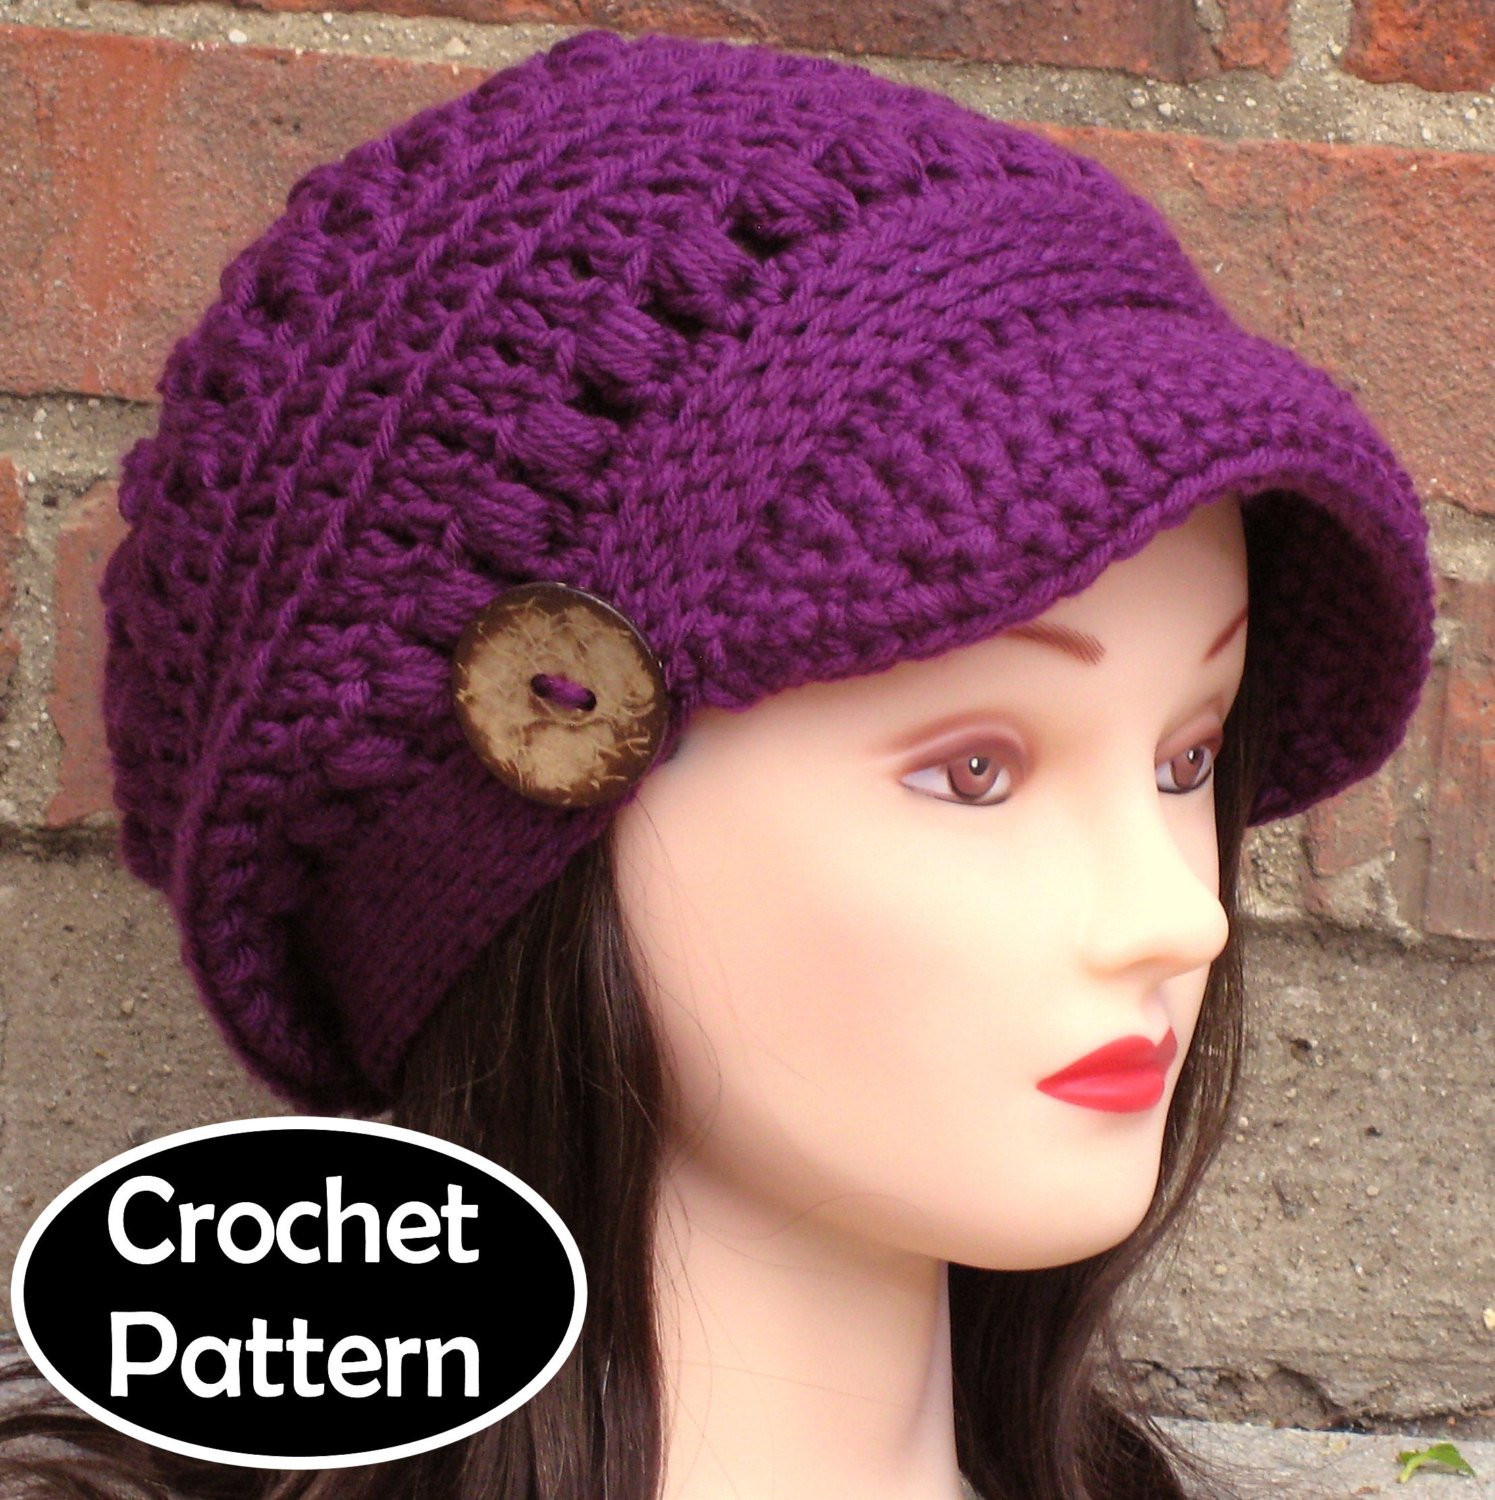 Awesome Crochet Hat Pattern Instant Download Pdf Brooklyn Newsboy Crochet Hat with Brim Pattern Of Contemporary 46 Photos Crochet Hat with Brim Pattern